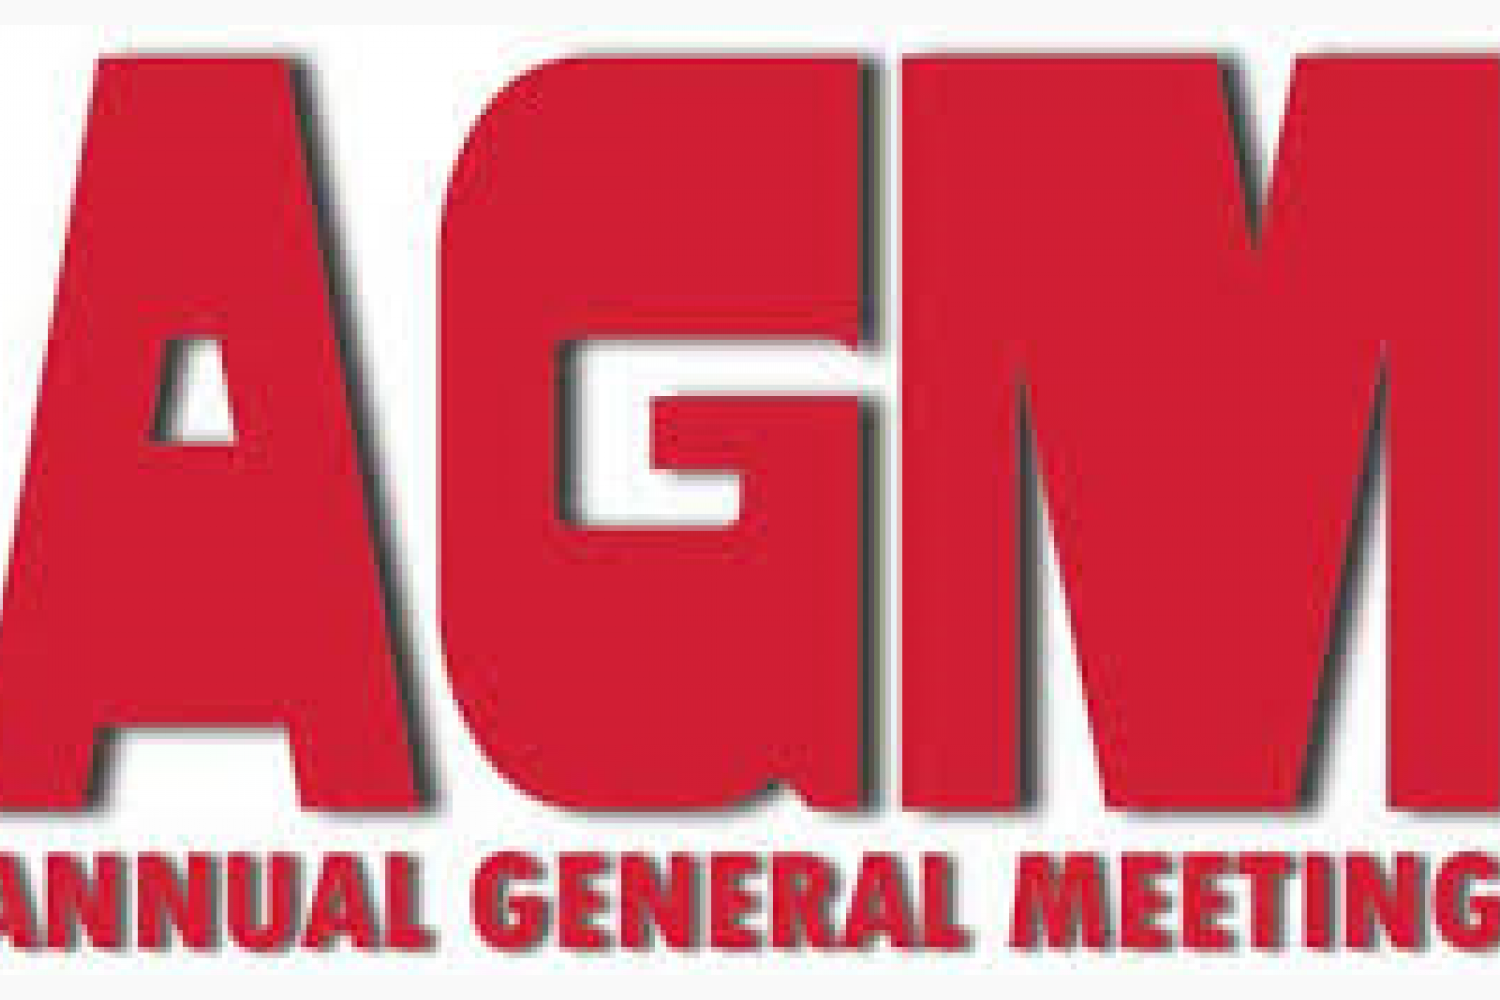 Kilmacud Crokes GAA Club AGM - Wednesday May 23rd  9pm